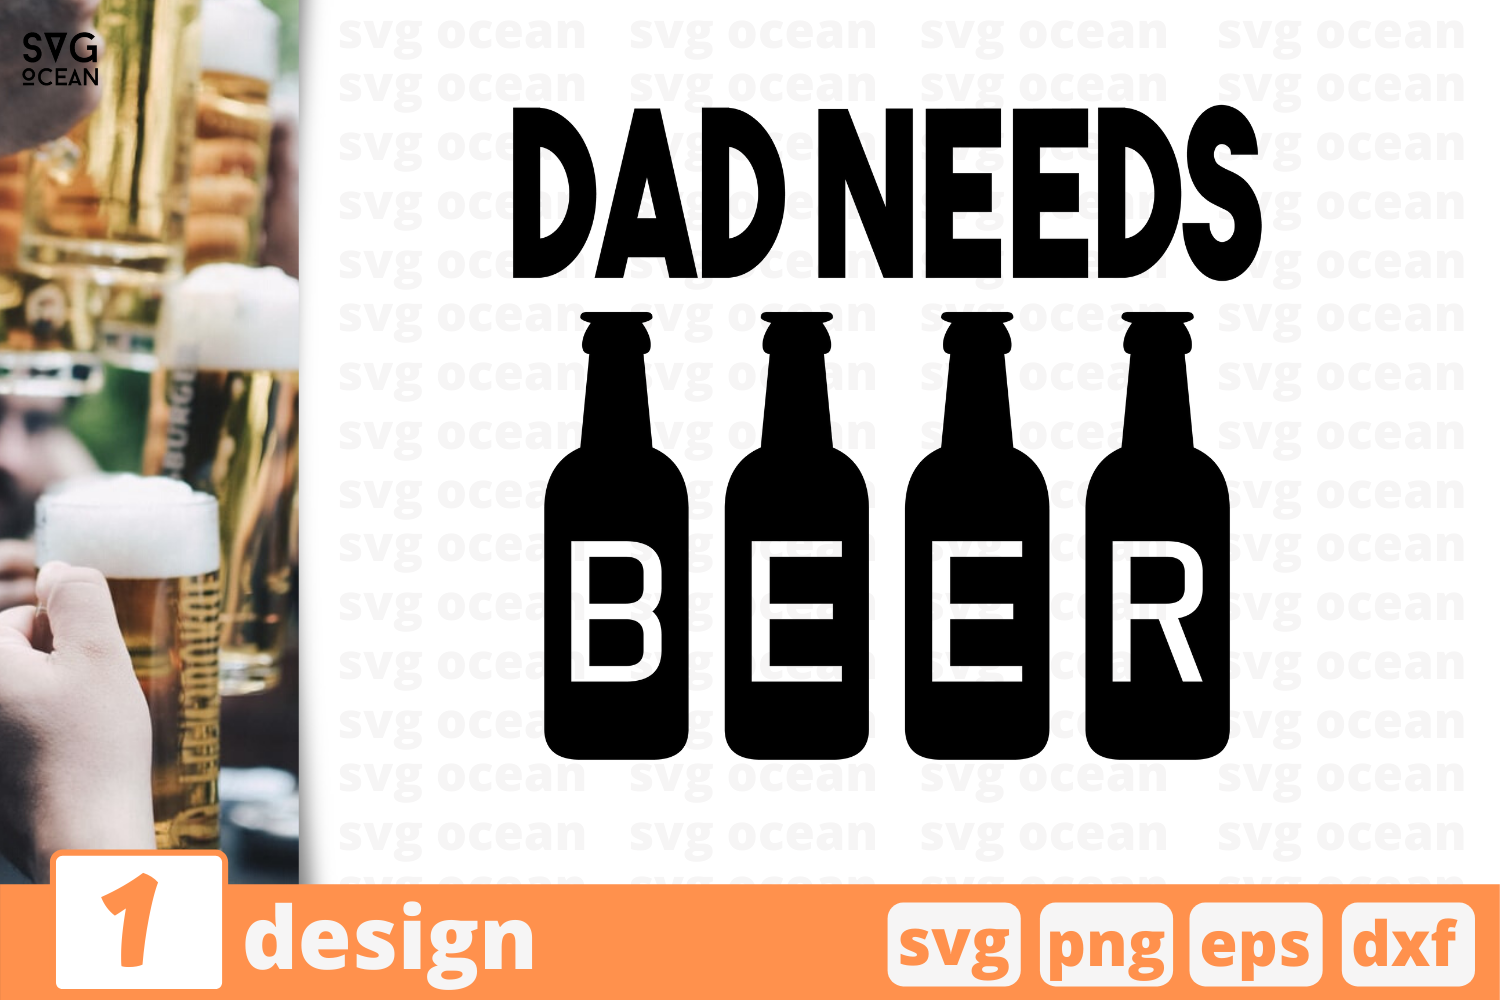 Download Free Dad Needs Beer Graphic By Svgocean Creative Fabrica for Cricut Explore, Silhouette and other cutting machines.